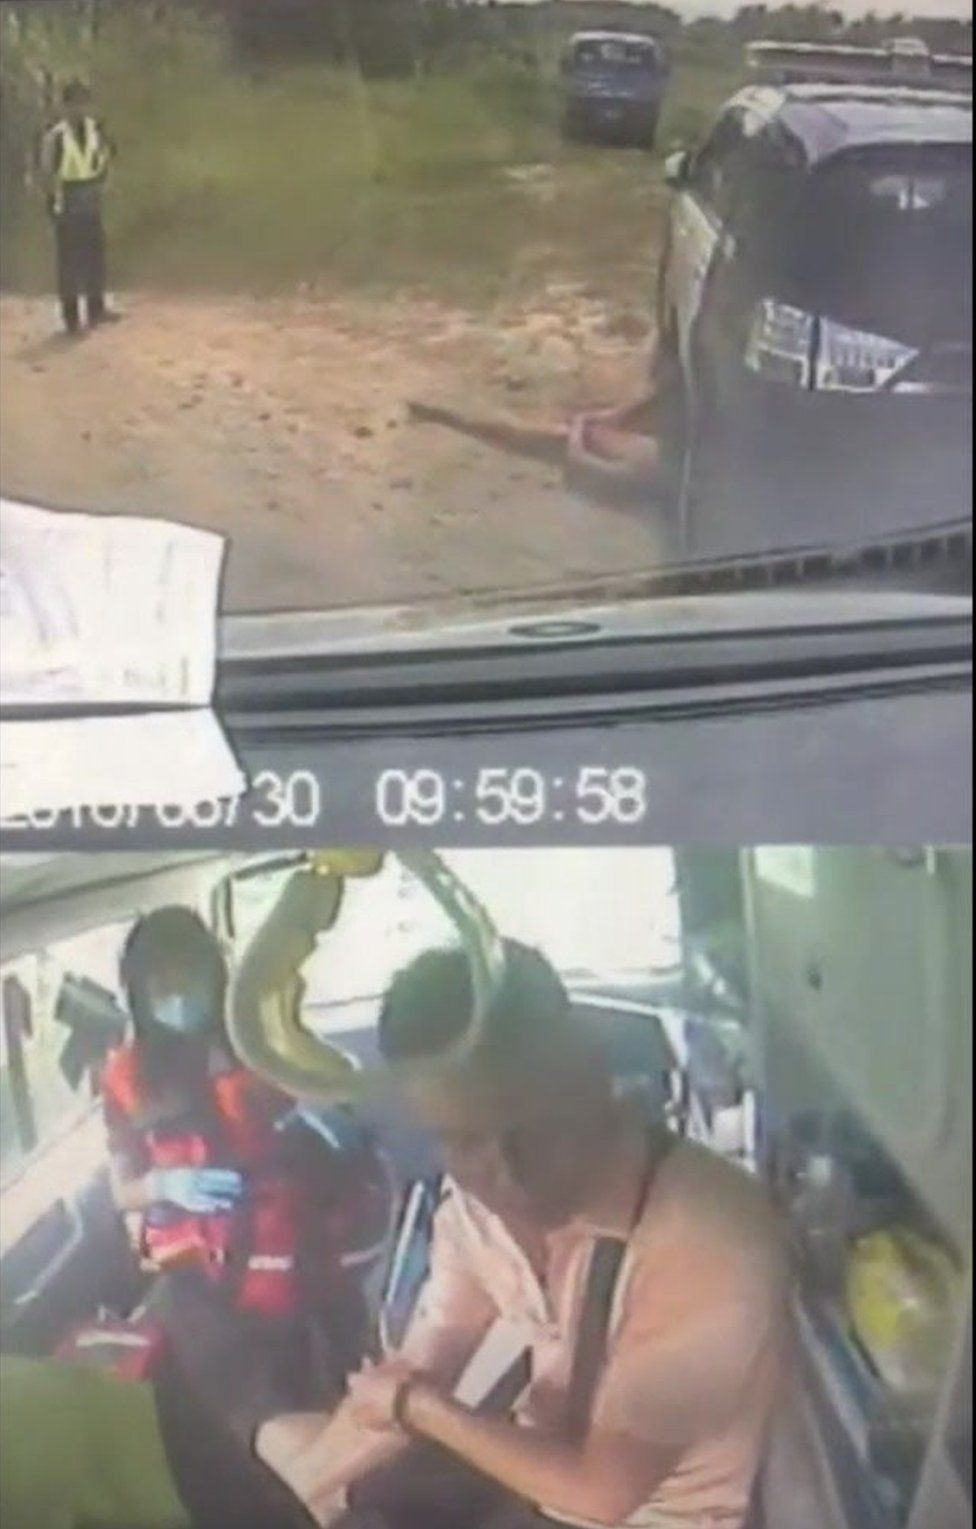 Dashcam footage from the ambulance shows a government worker being driven away while the dying man lies in a pool of blood next to a police car